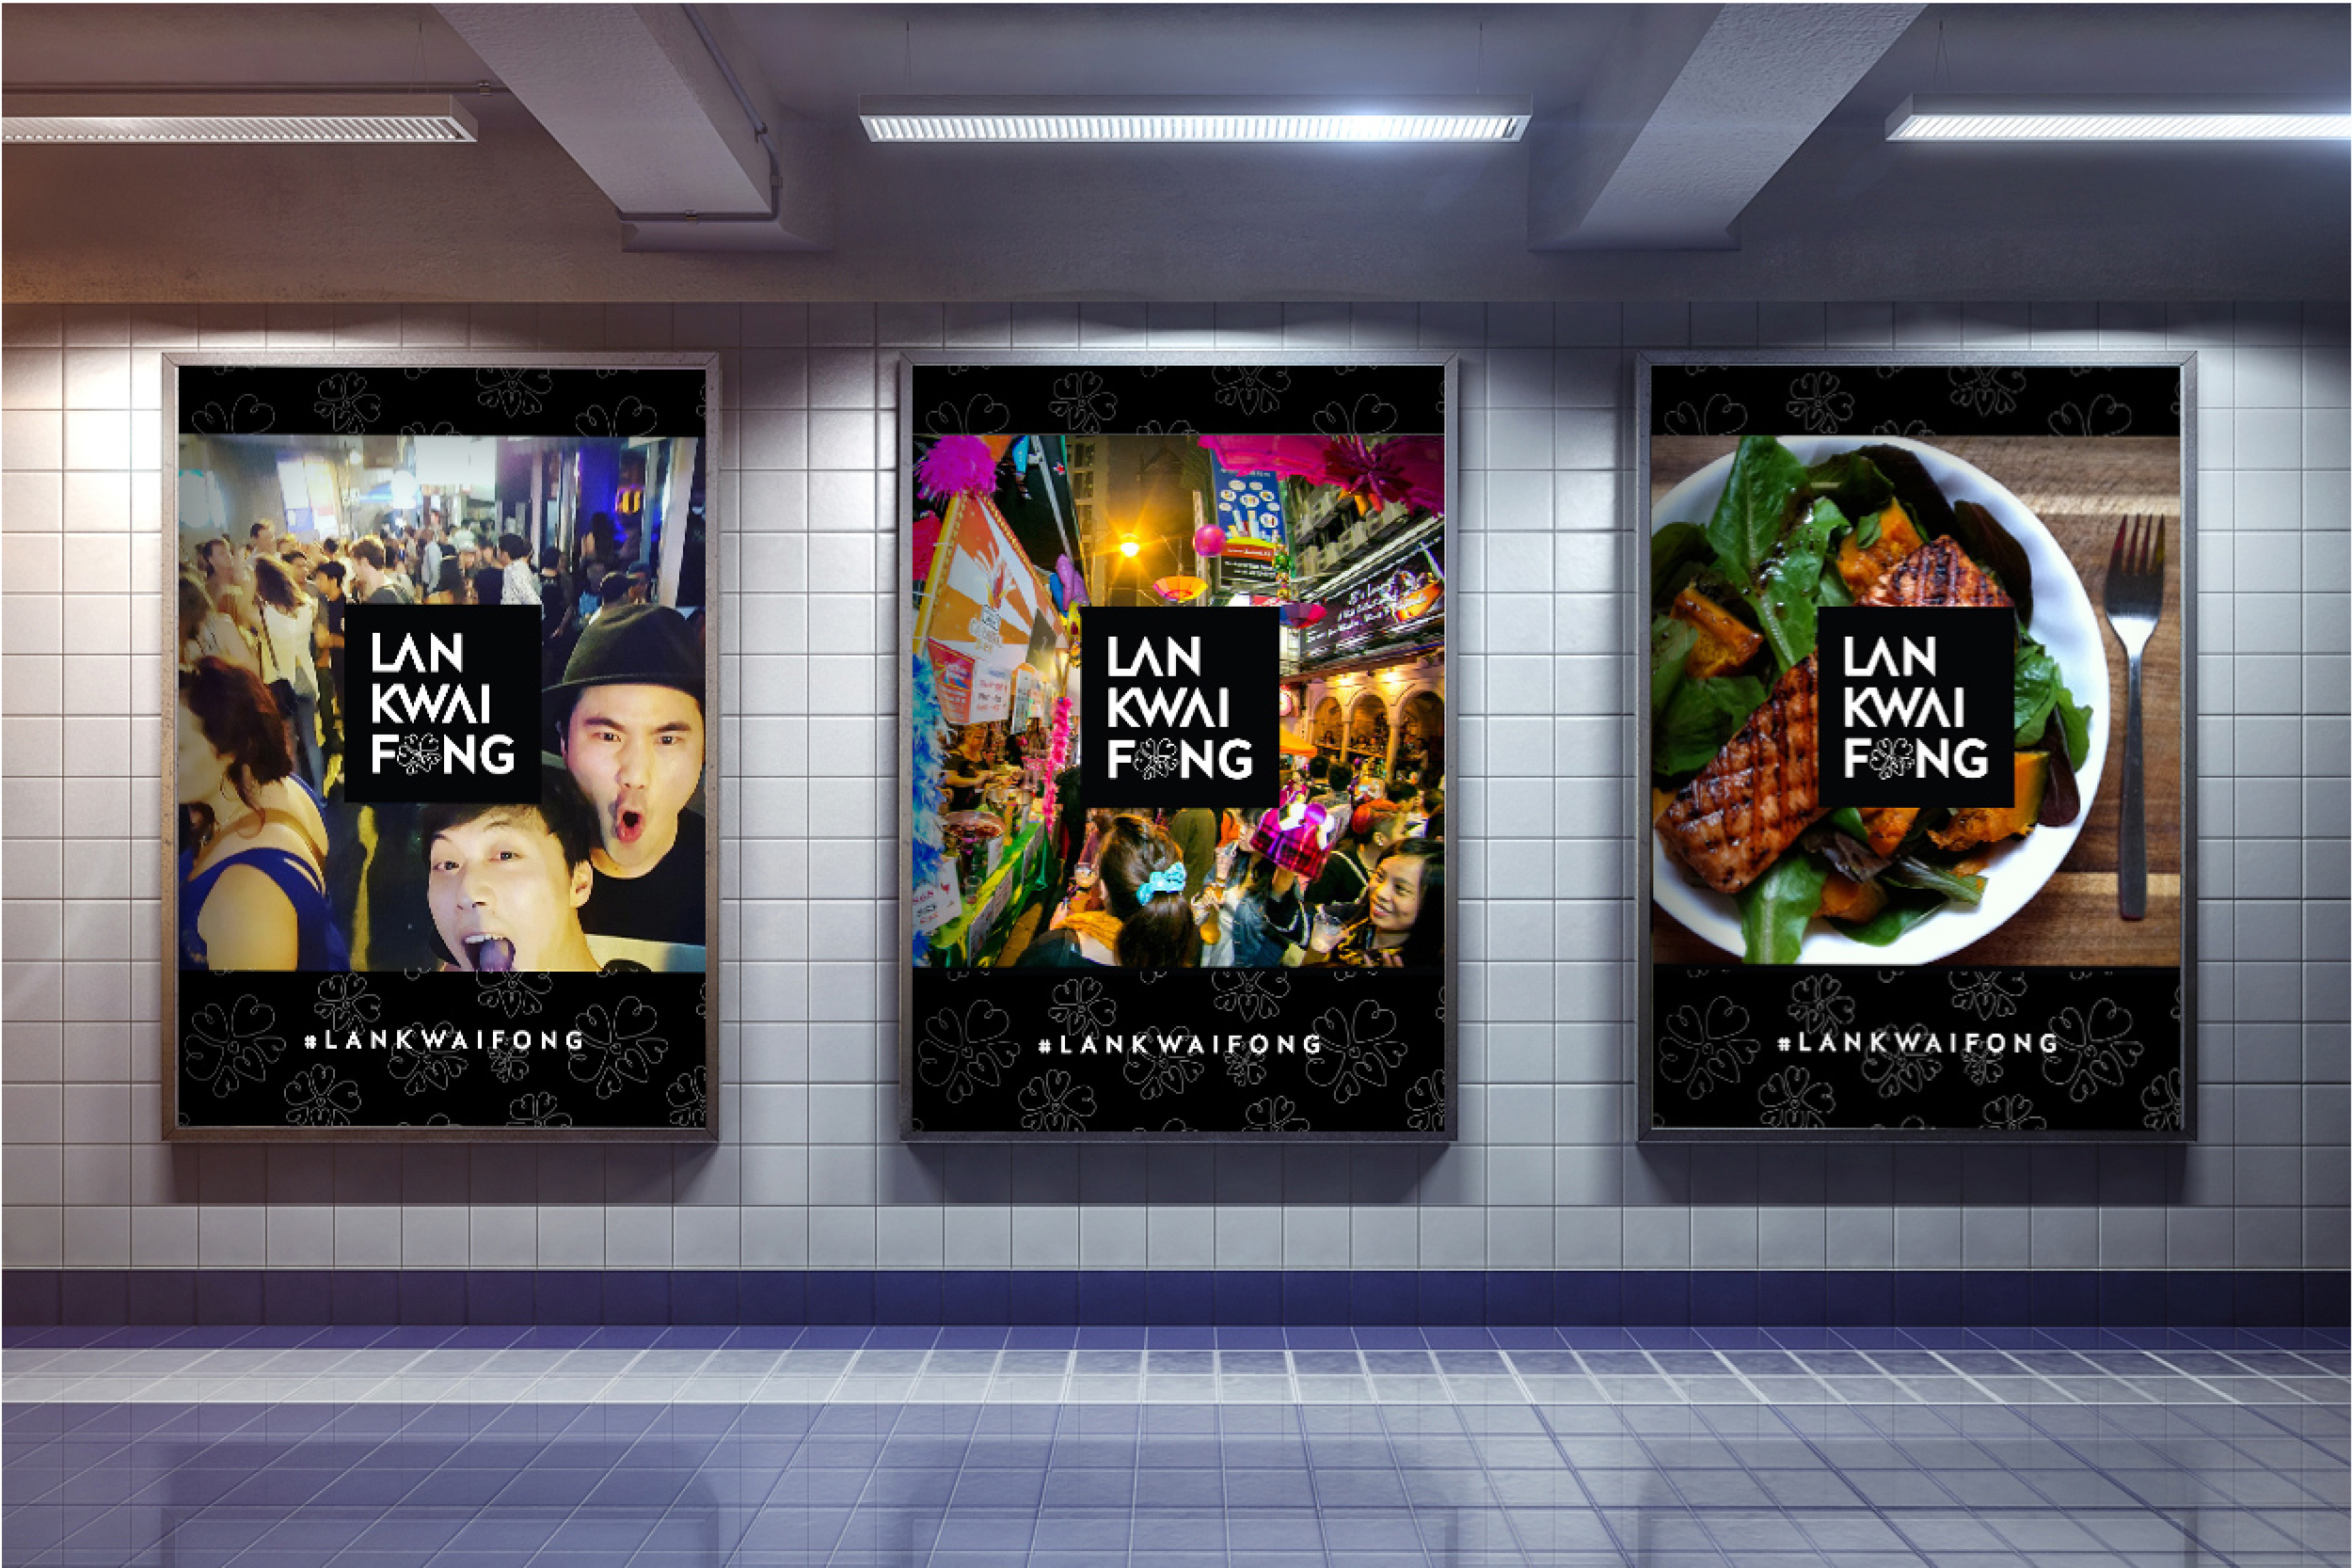 Hong Kong's metro station is one of the busiest in the world. LKF digital ads will stream consumer content photos from instagram to show the diverse elements of LKF.